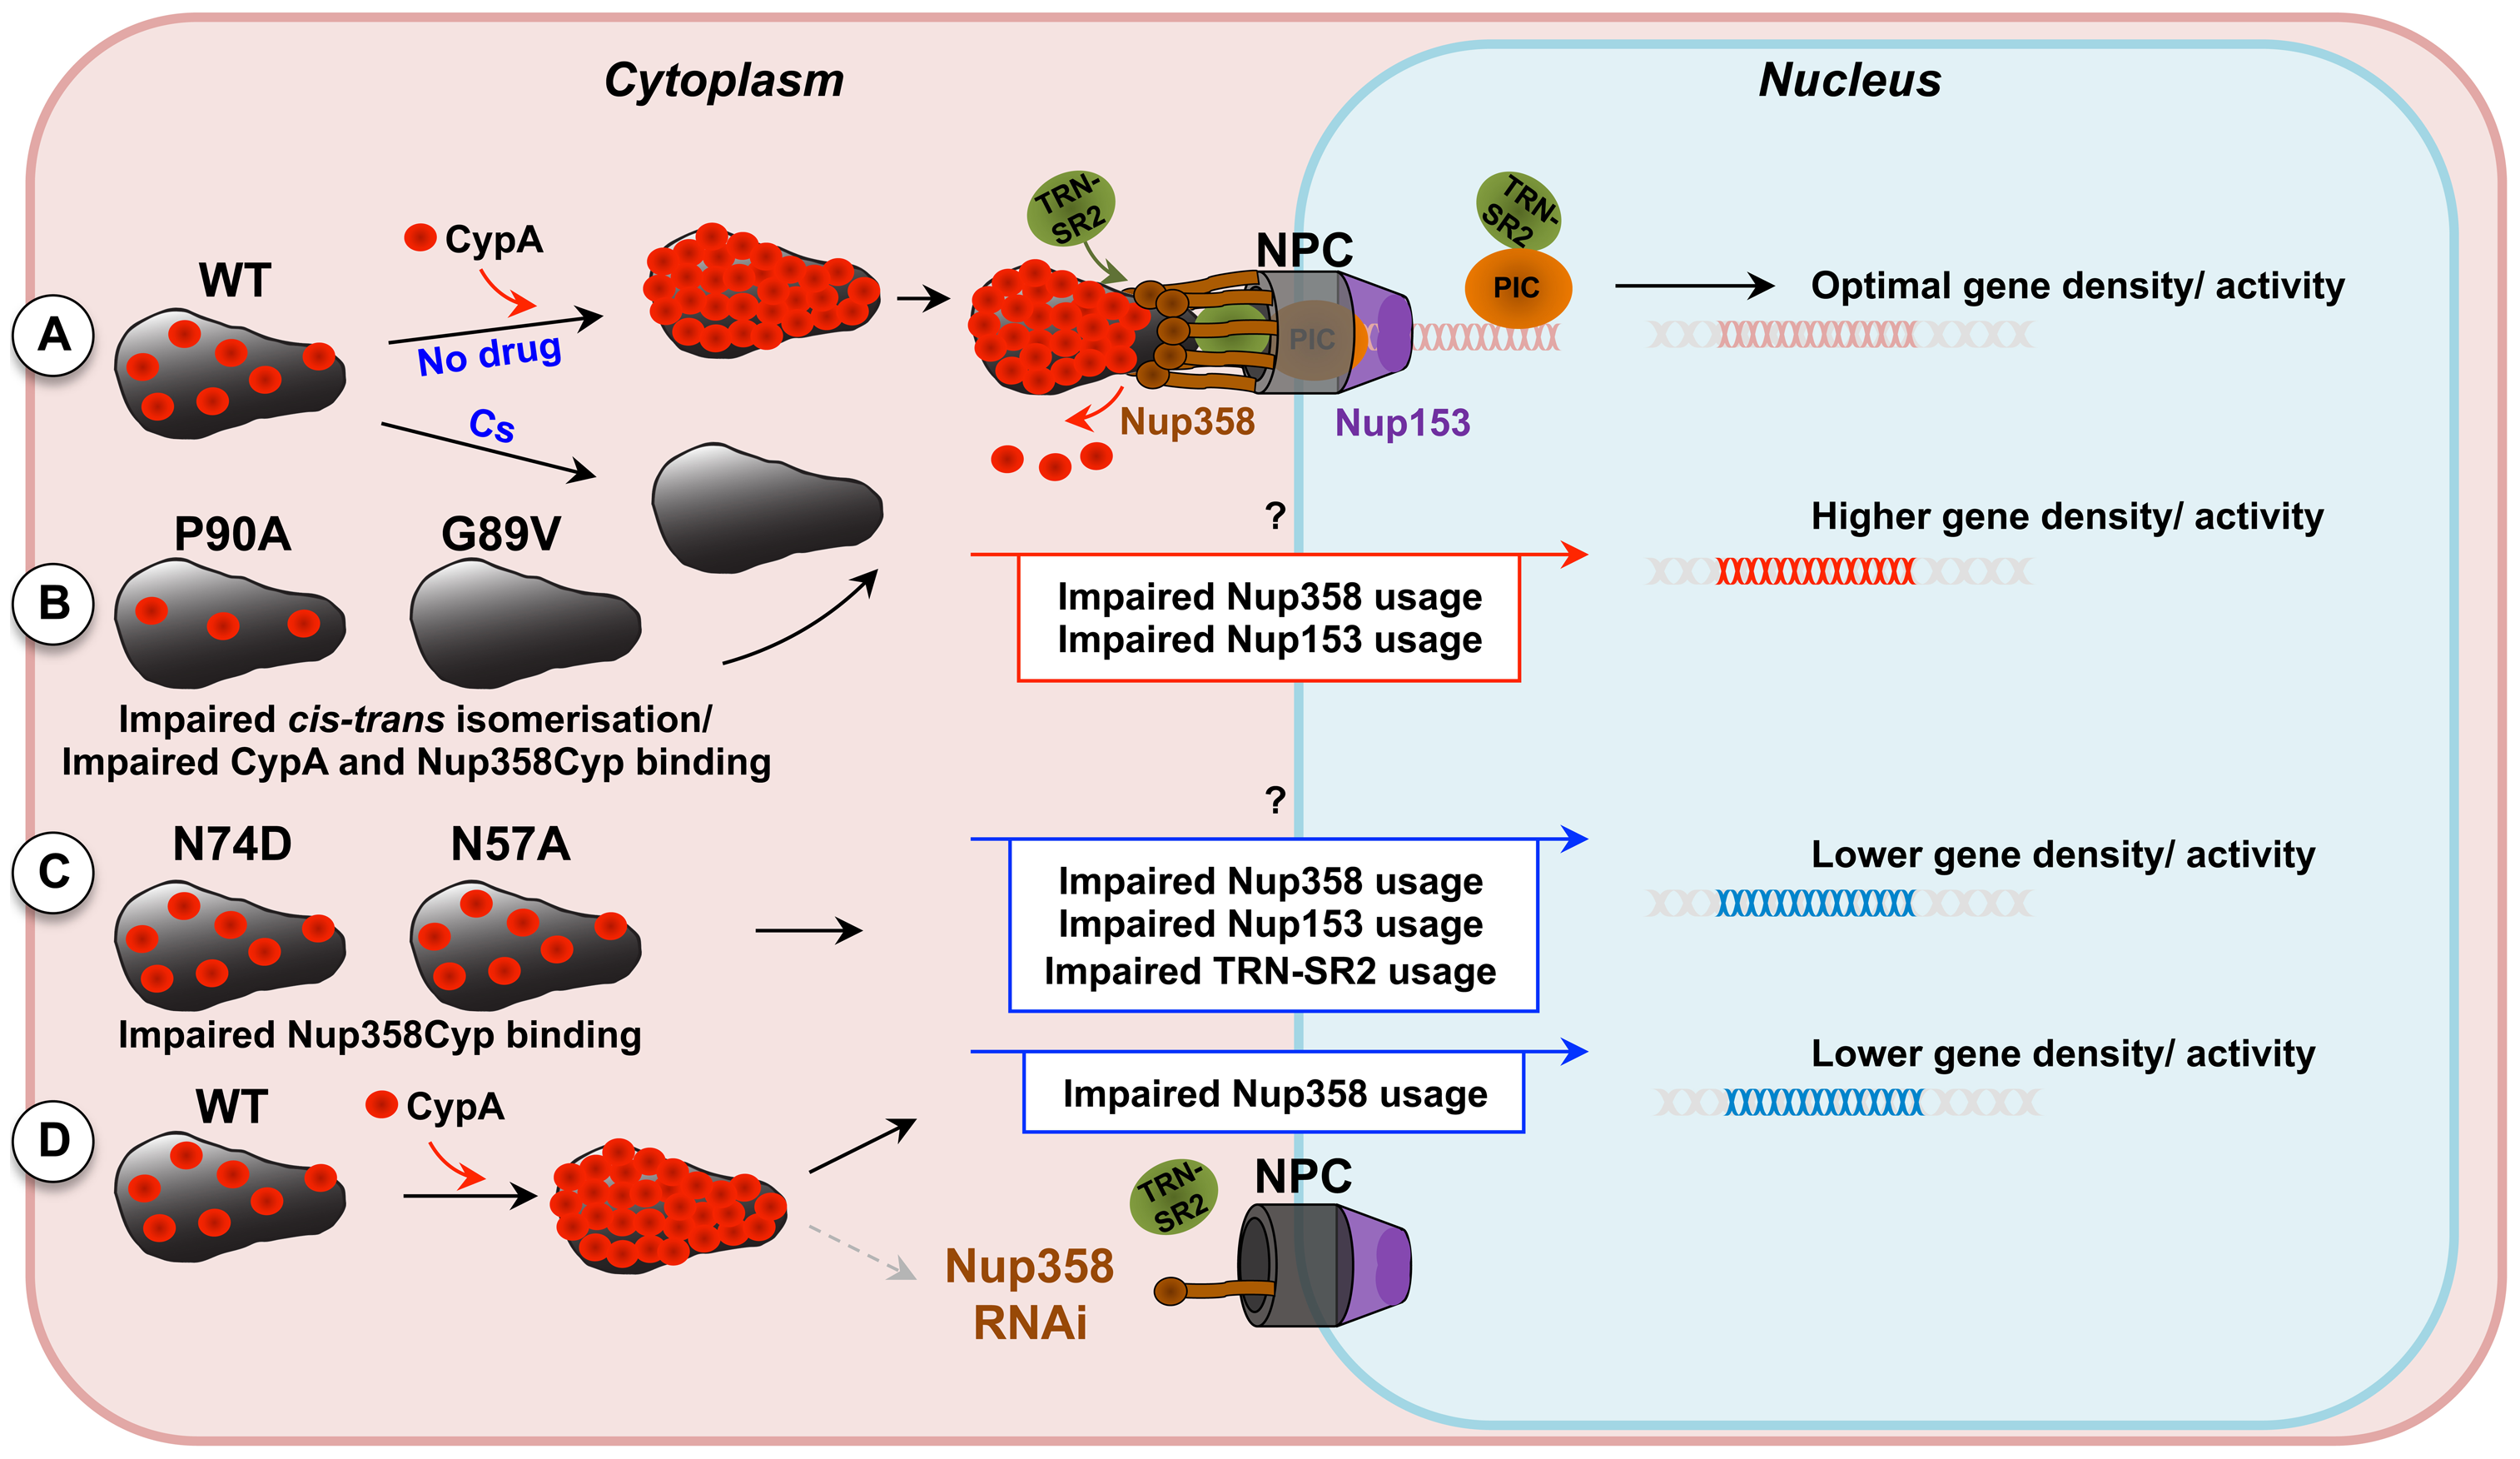 Model for CypA-dependent/-independent HIV-1 nuclear entry pathways.